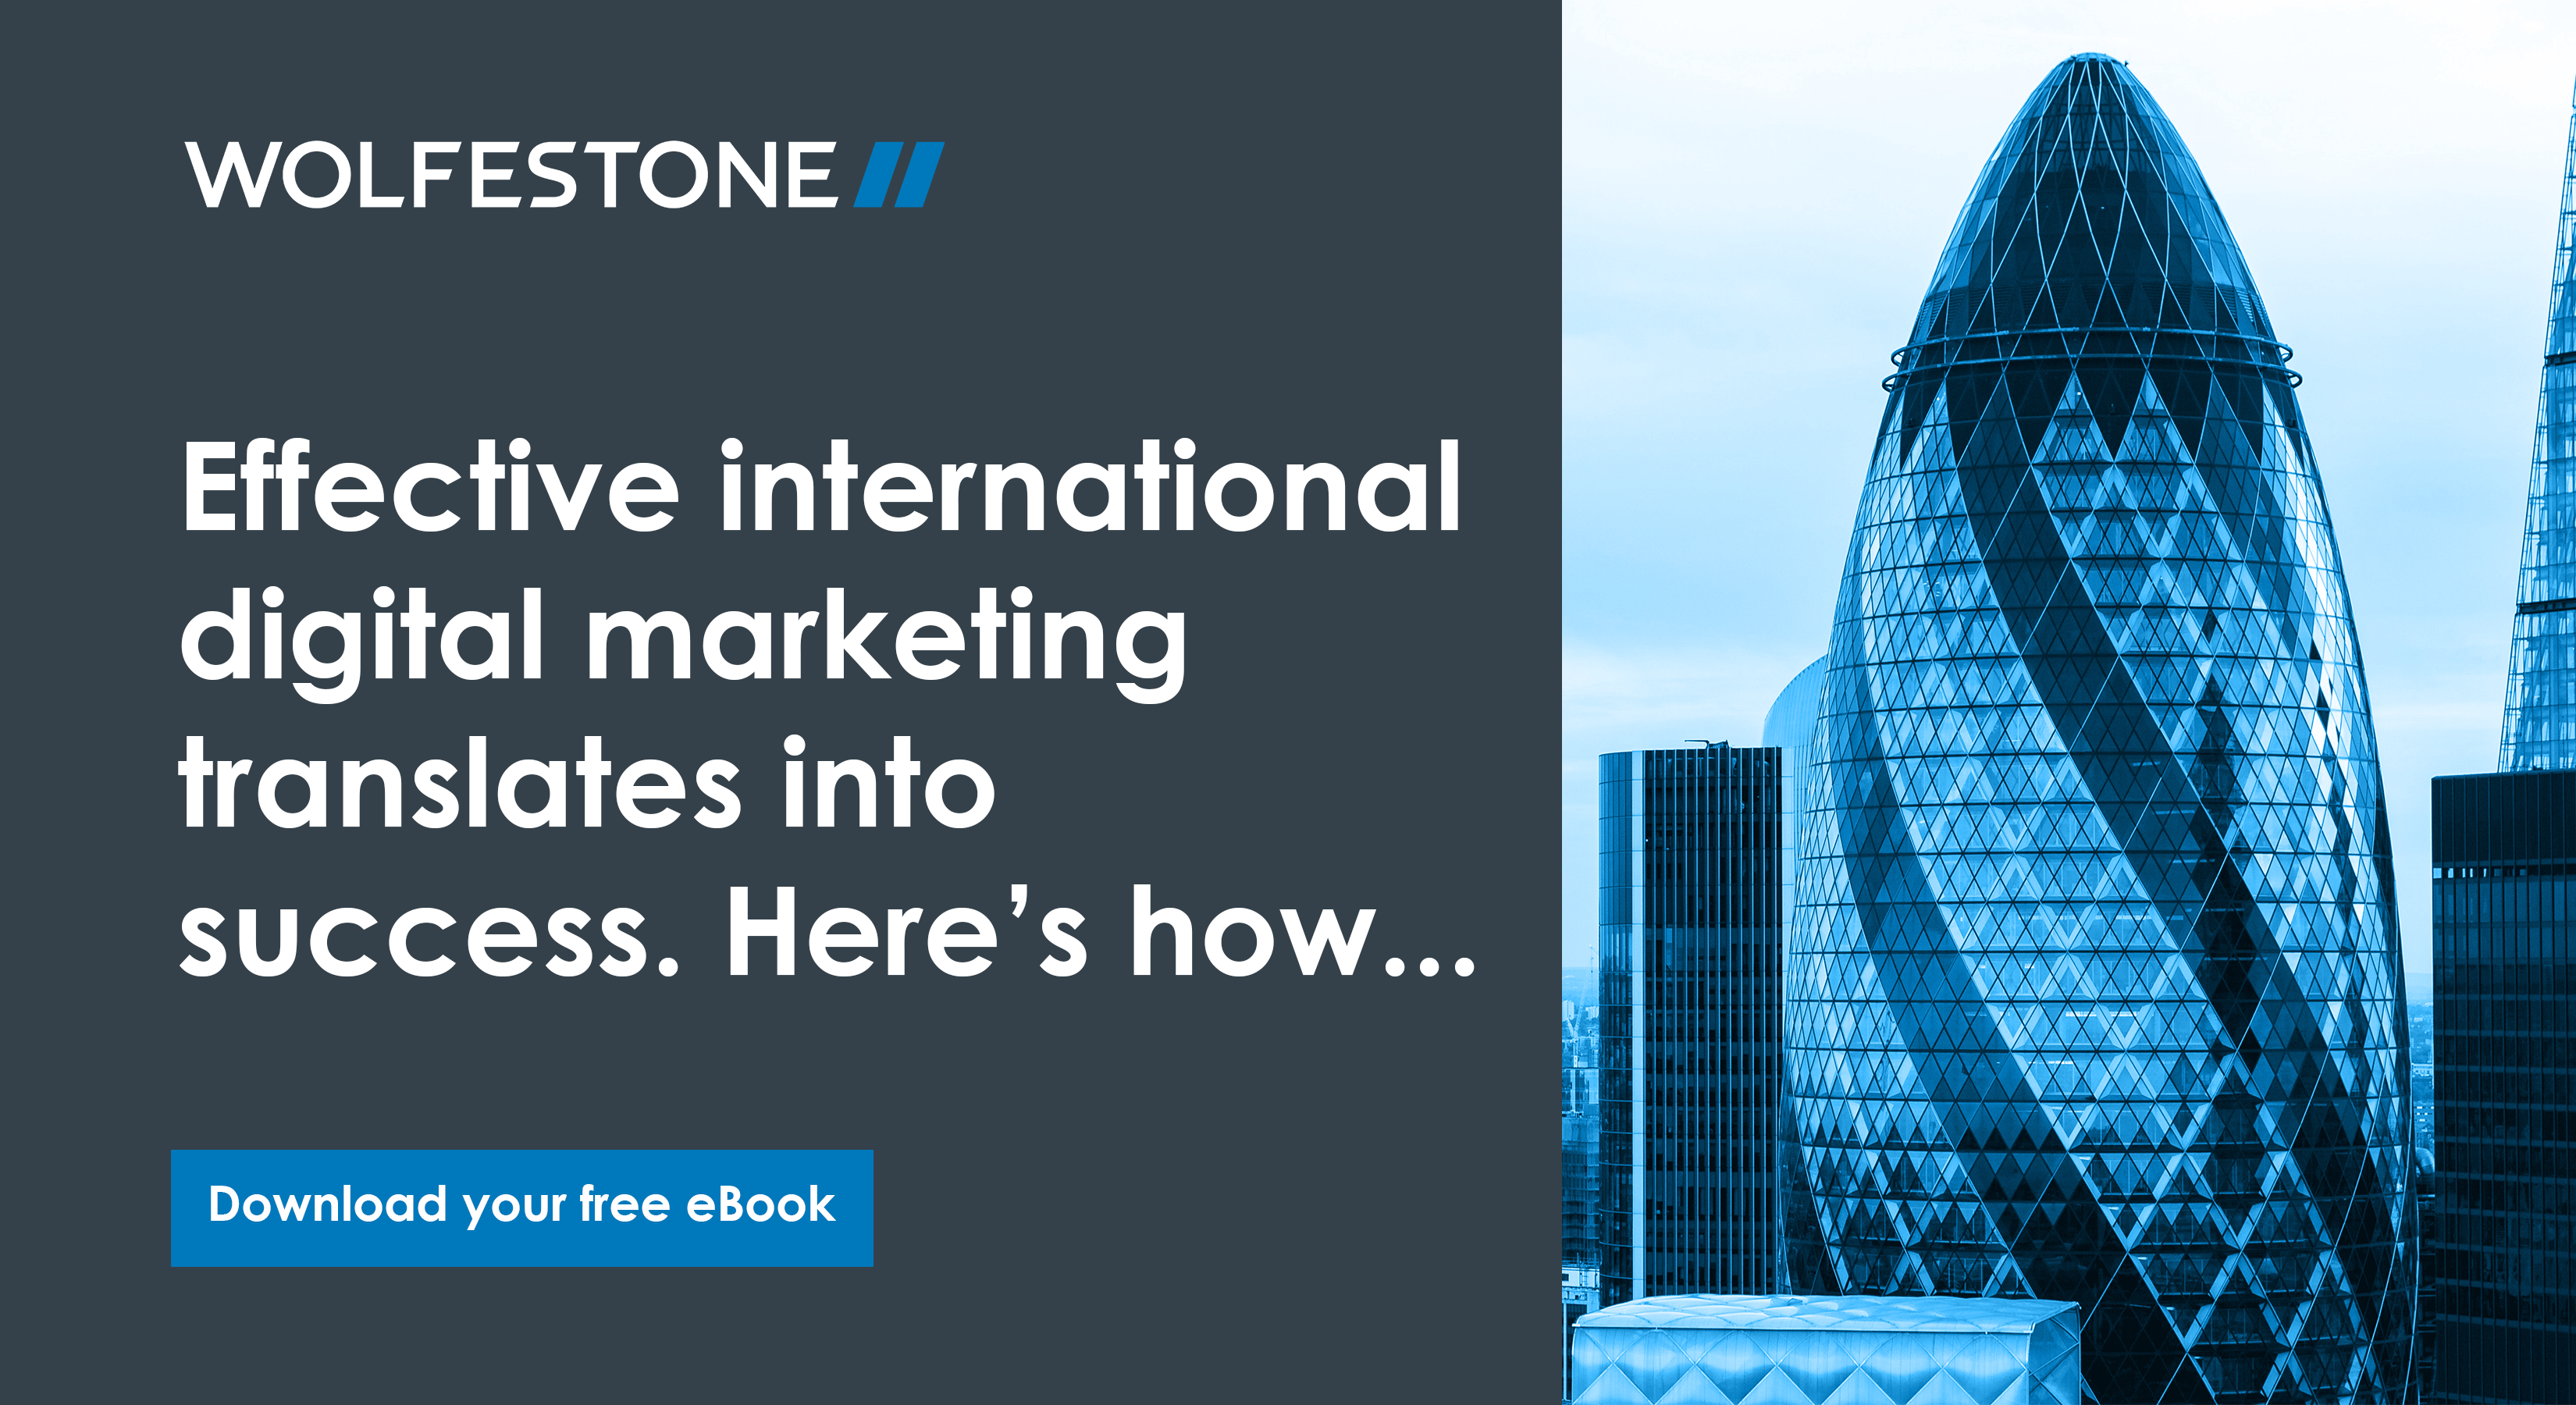 Effective international digital marketing translates into success. Here's how...Download your free eBook